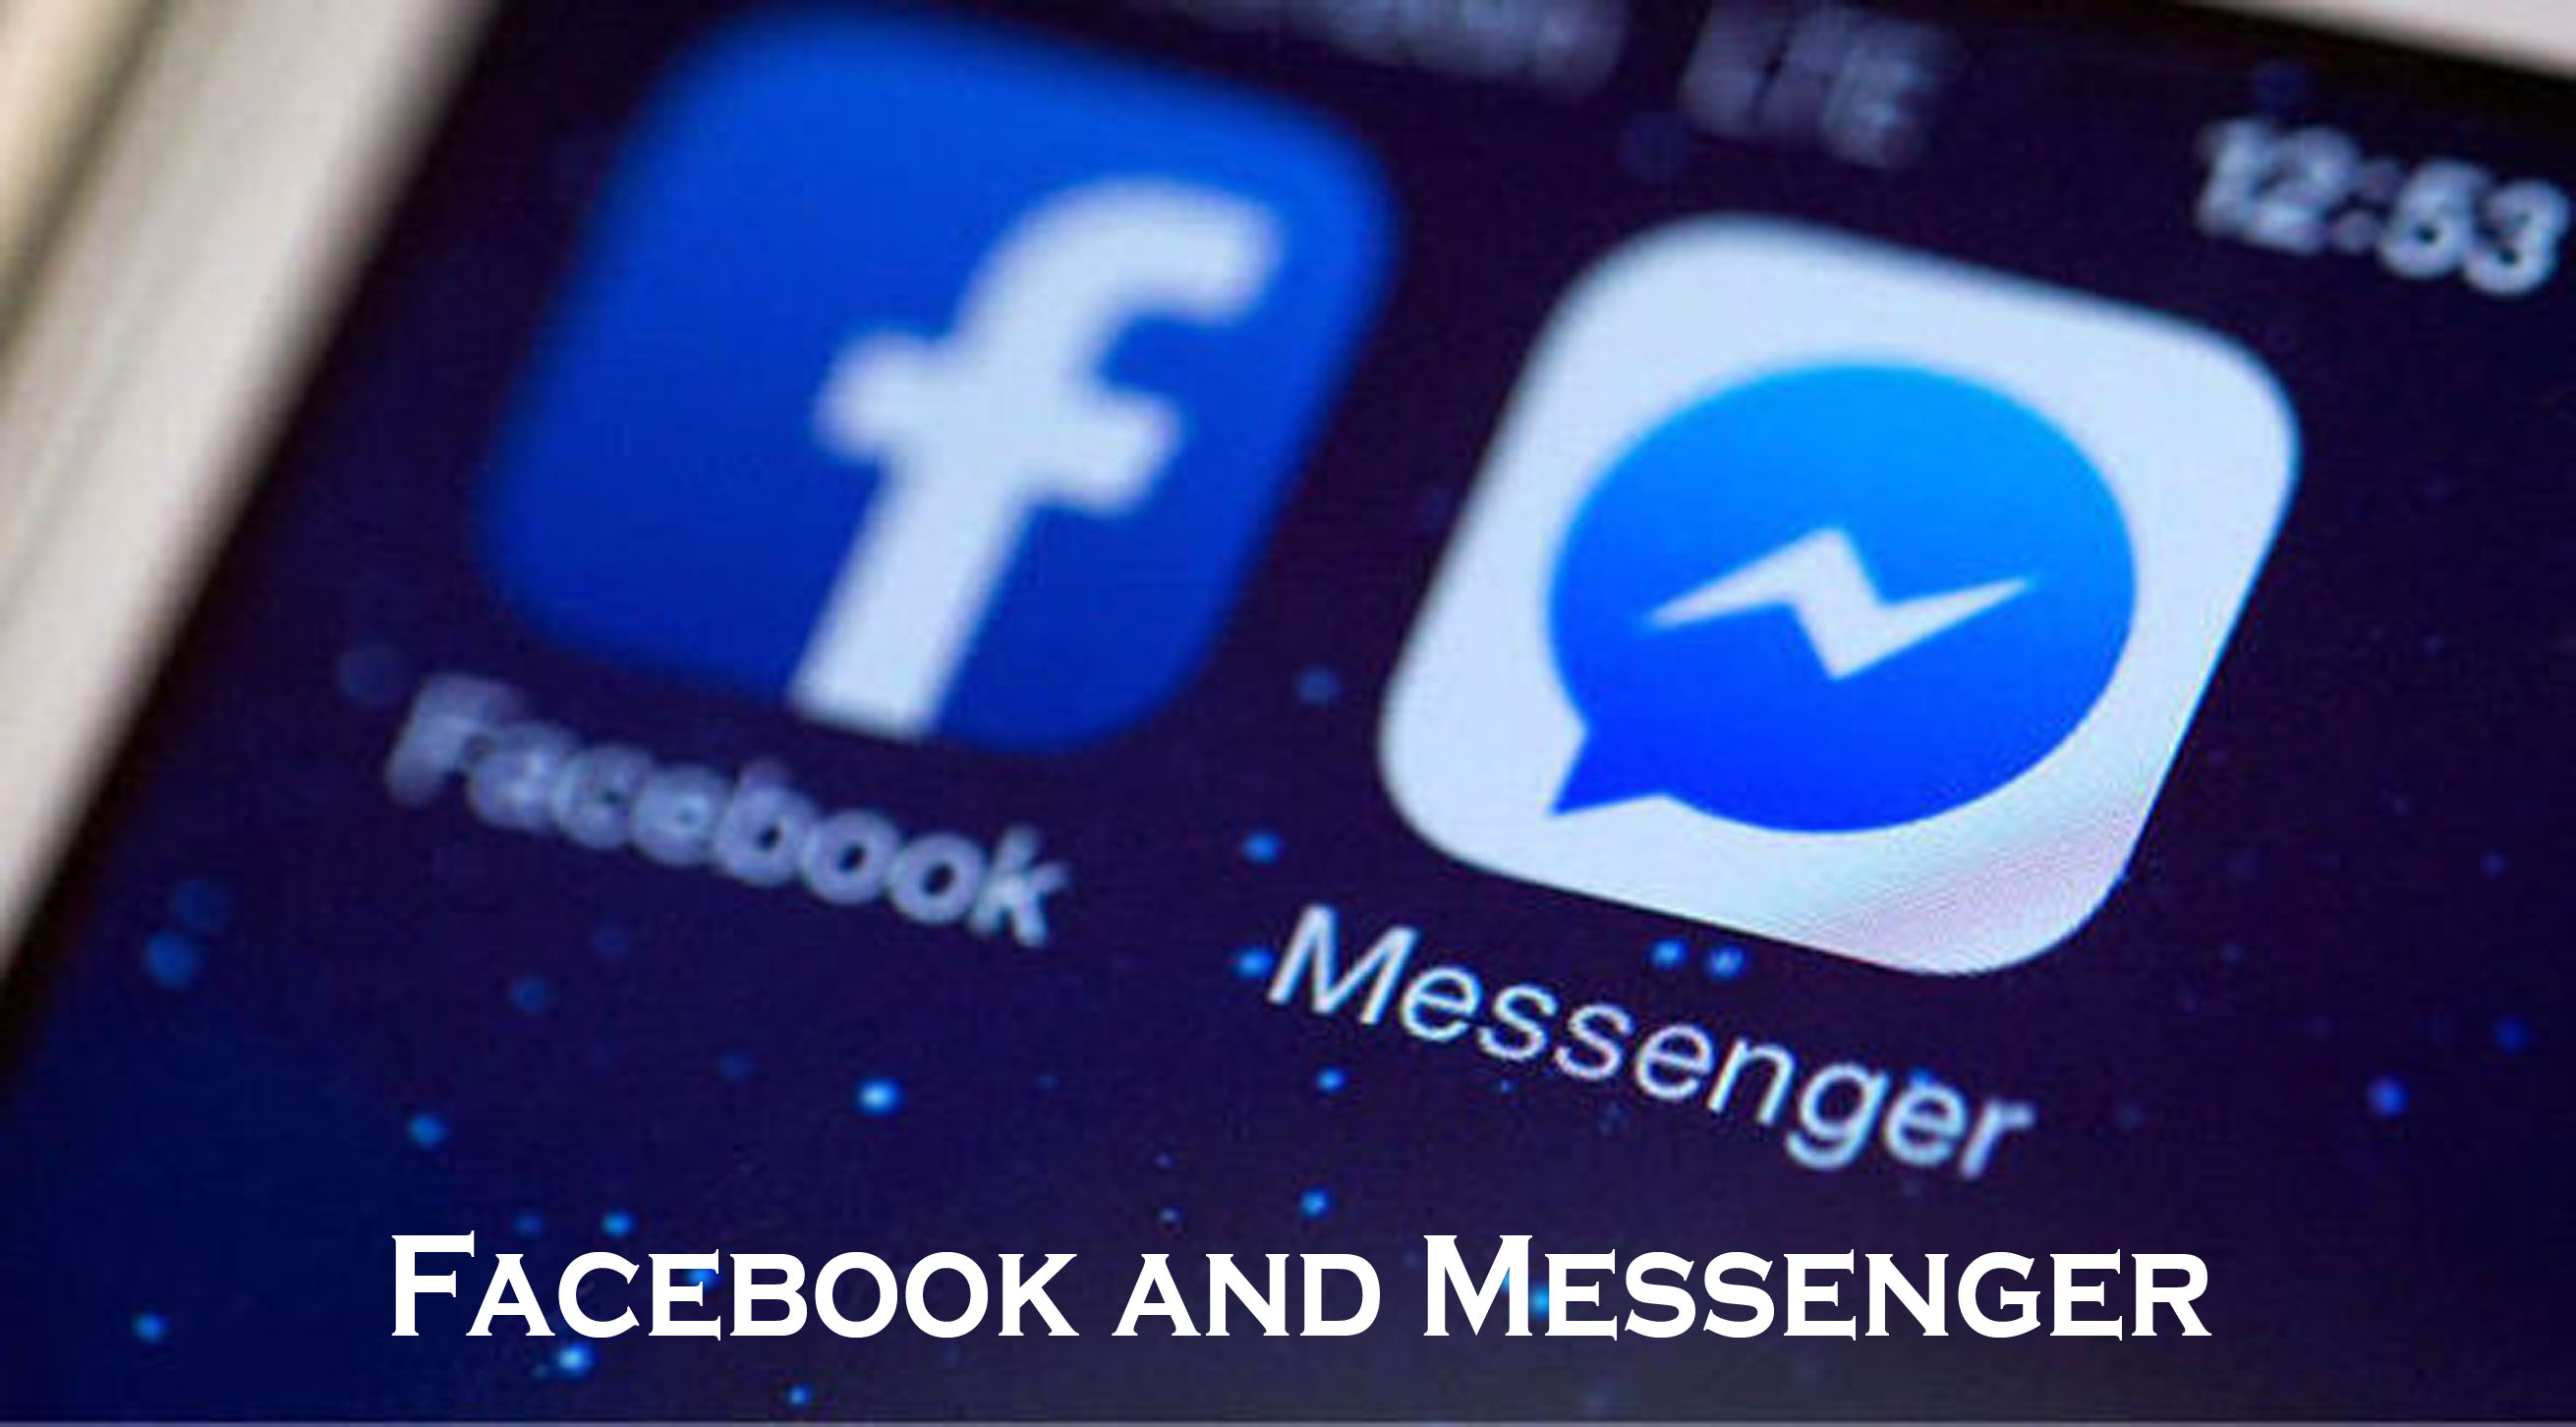 Facebook and Messenger – Facebook Apps | Facebook Messenger App